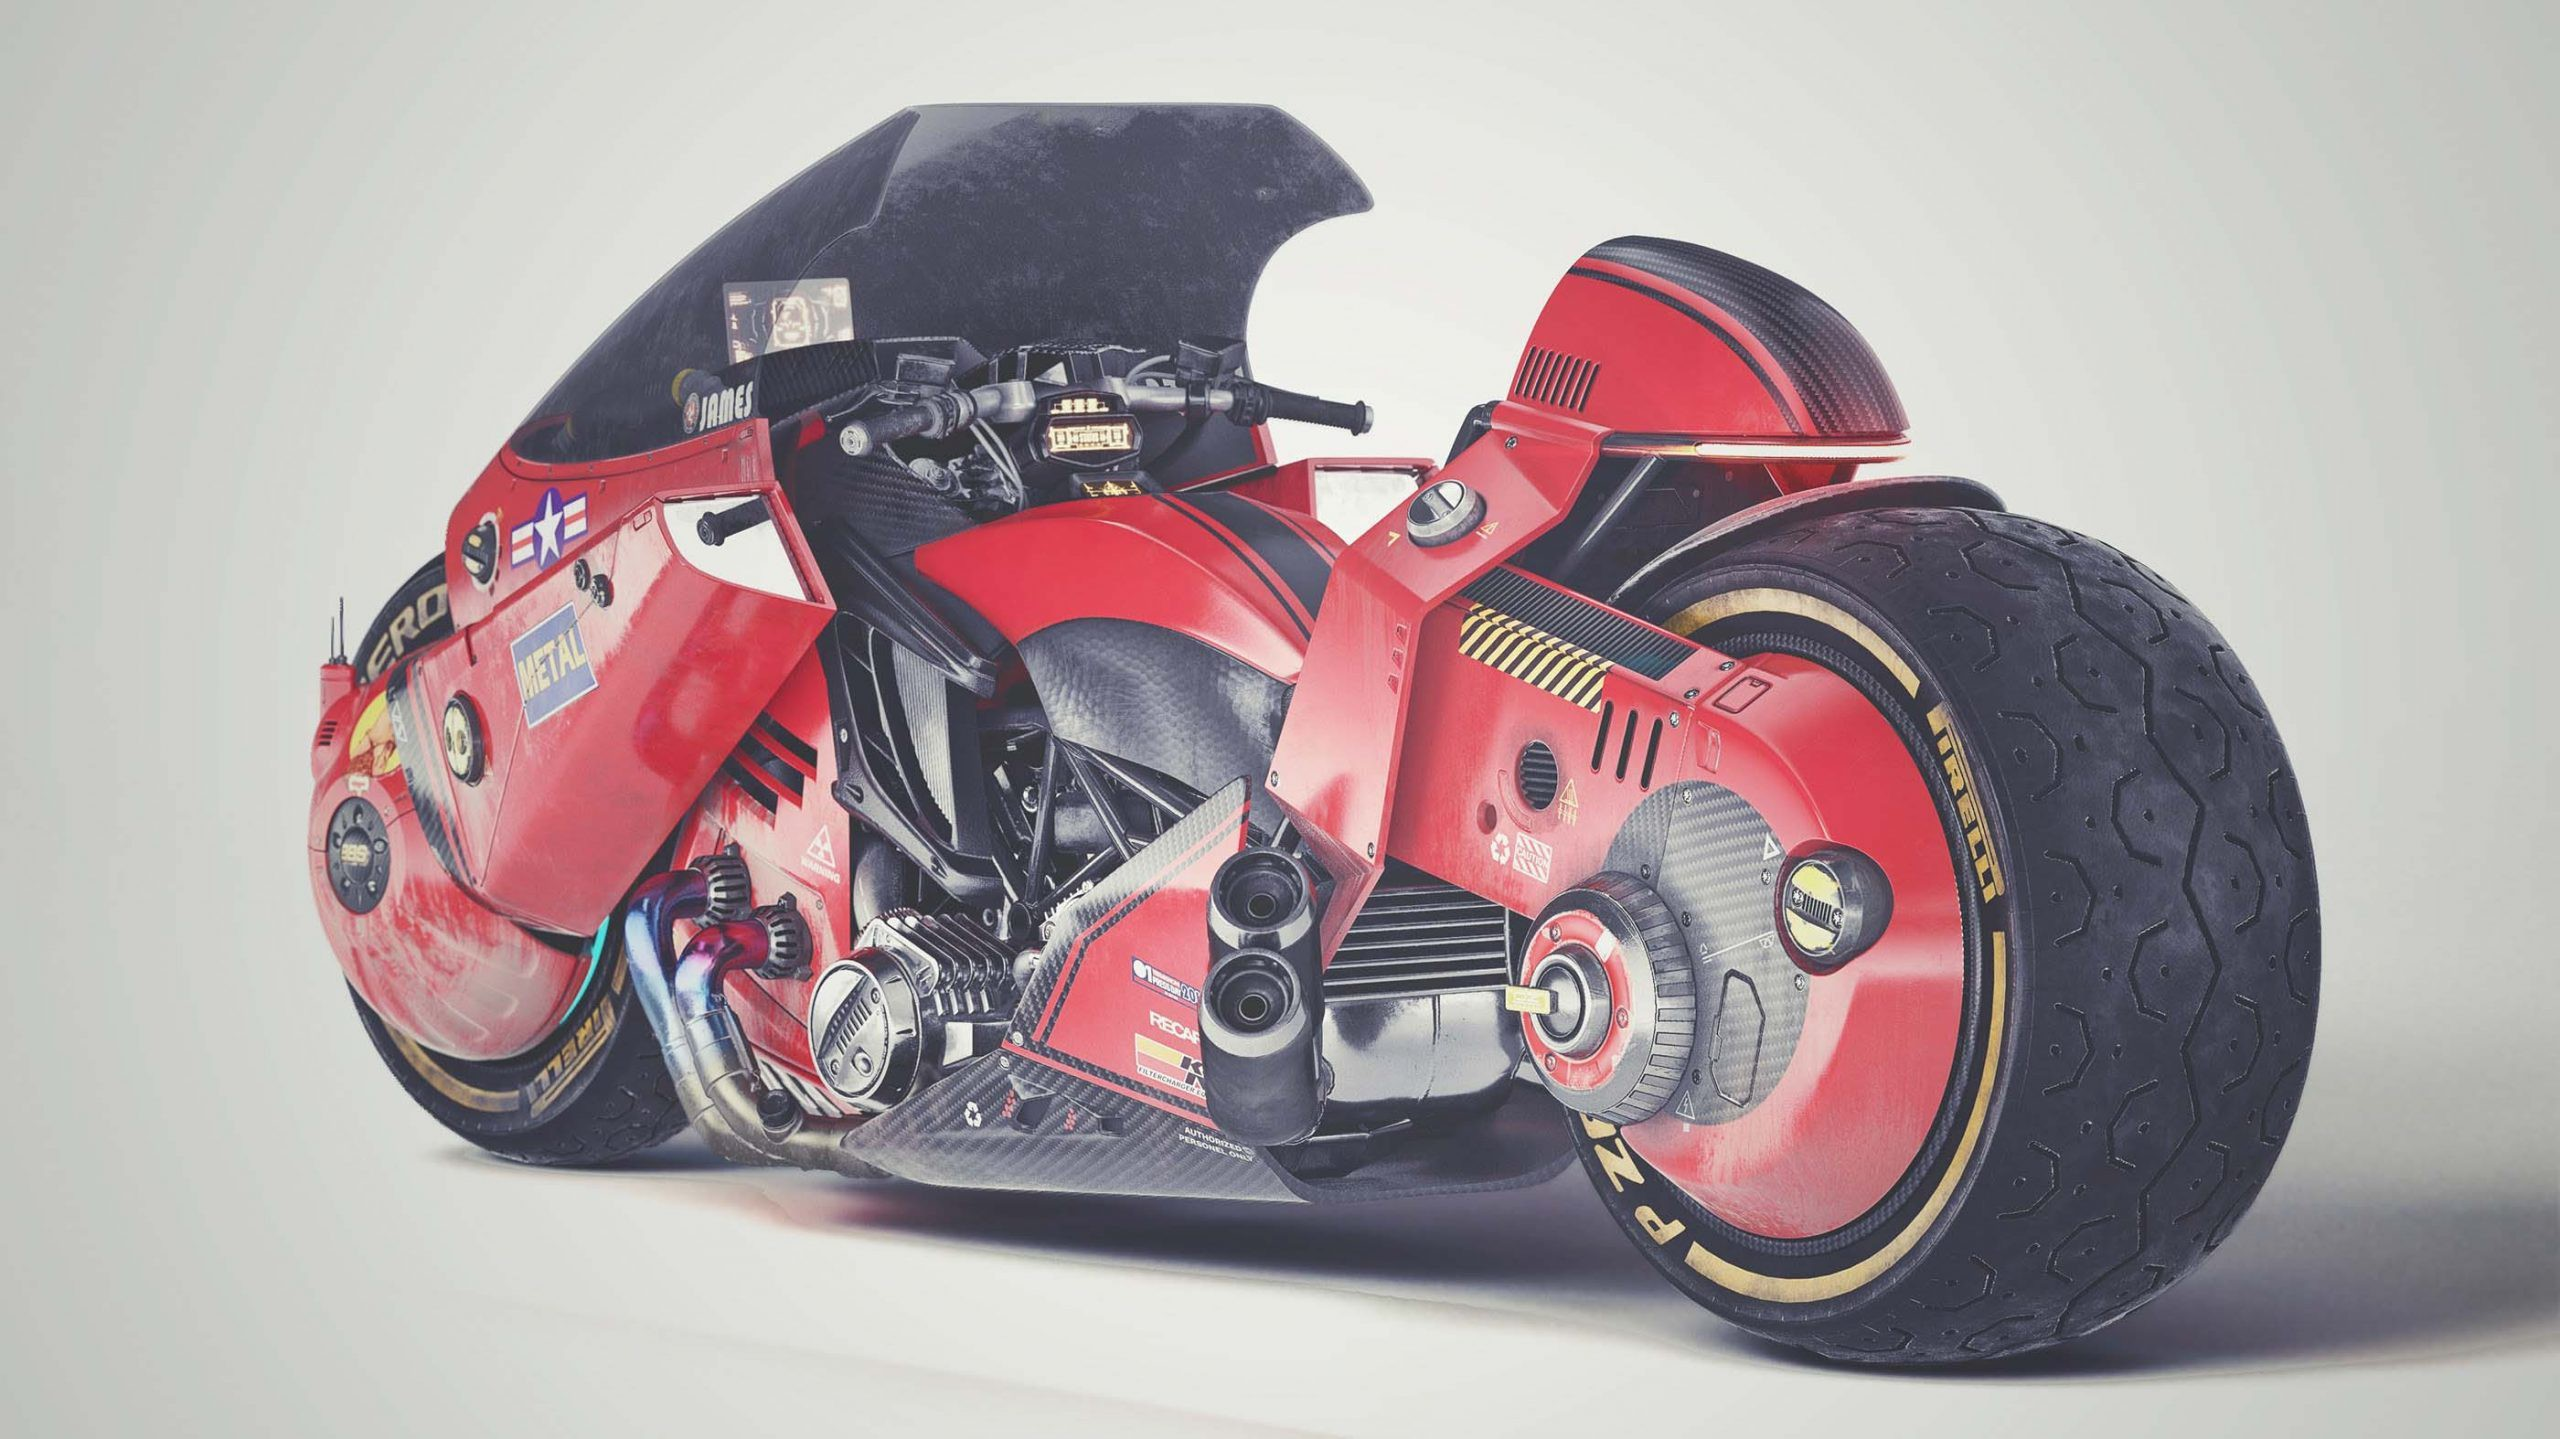 Akira motorcycle concept James Qiu 01 scaled